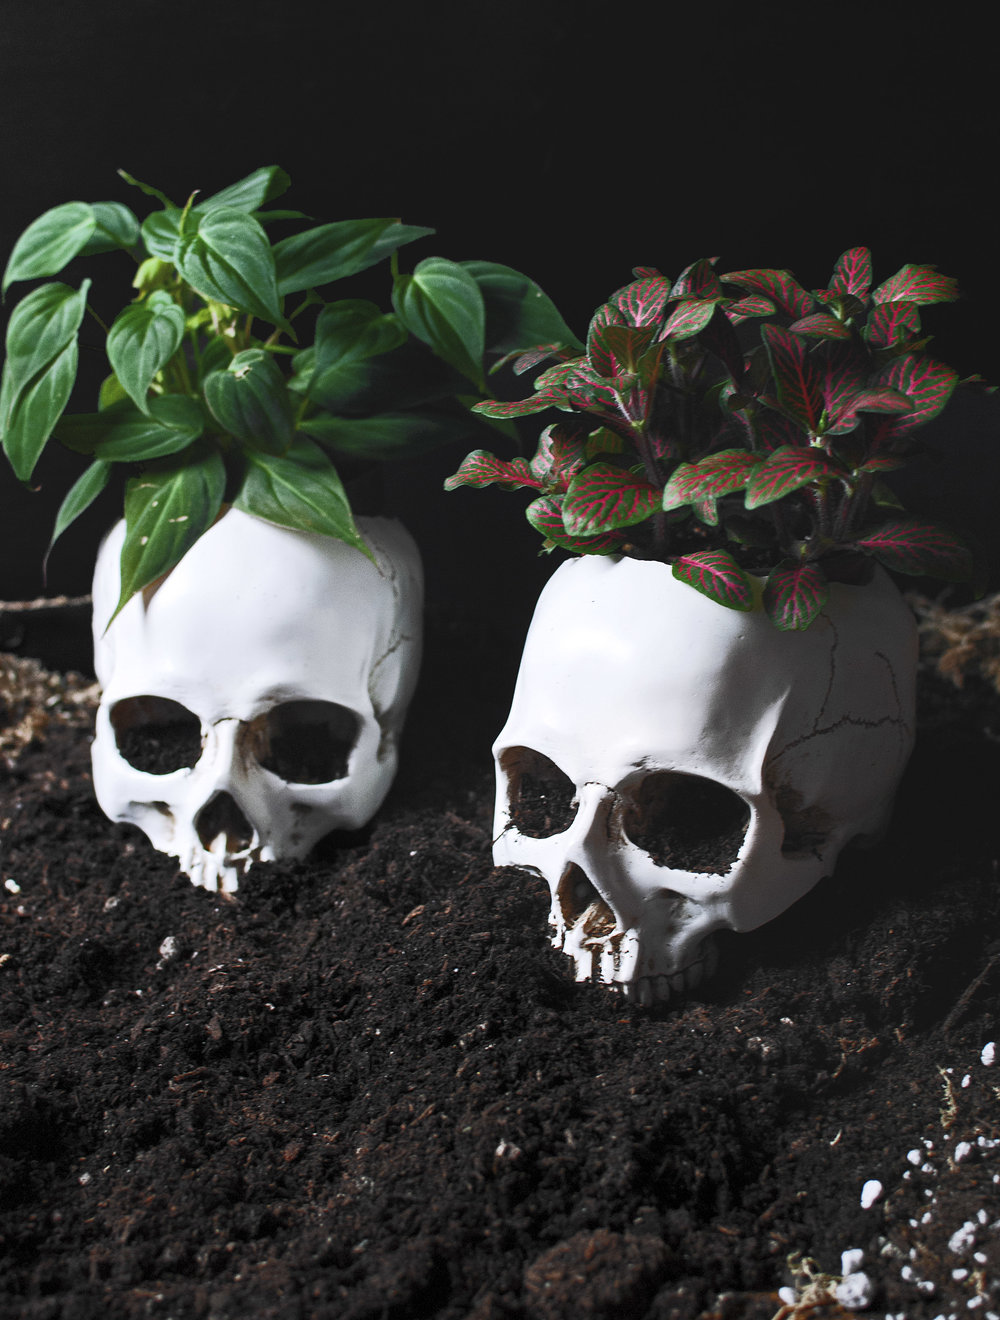 DIY Skull Planters feat. Velvet Philodendron + Fittonia